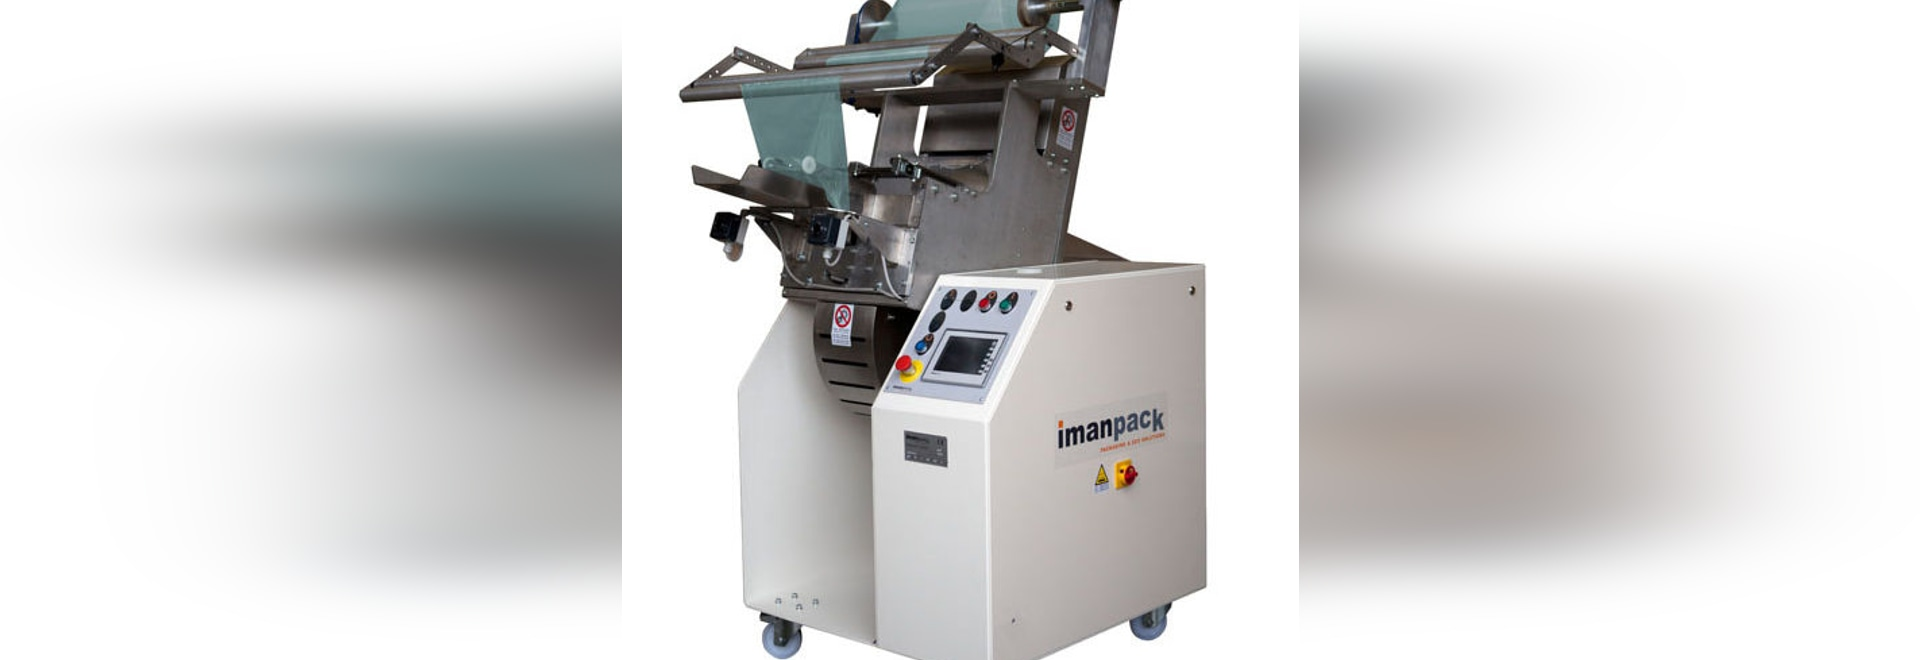 NEW: horizontal wrapping machine by IMANPACK Packaging & Eco Solutions S.p.a.